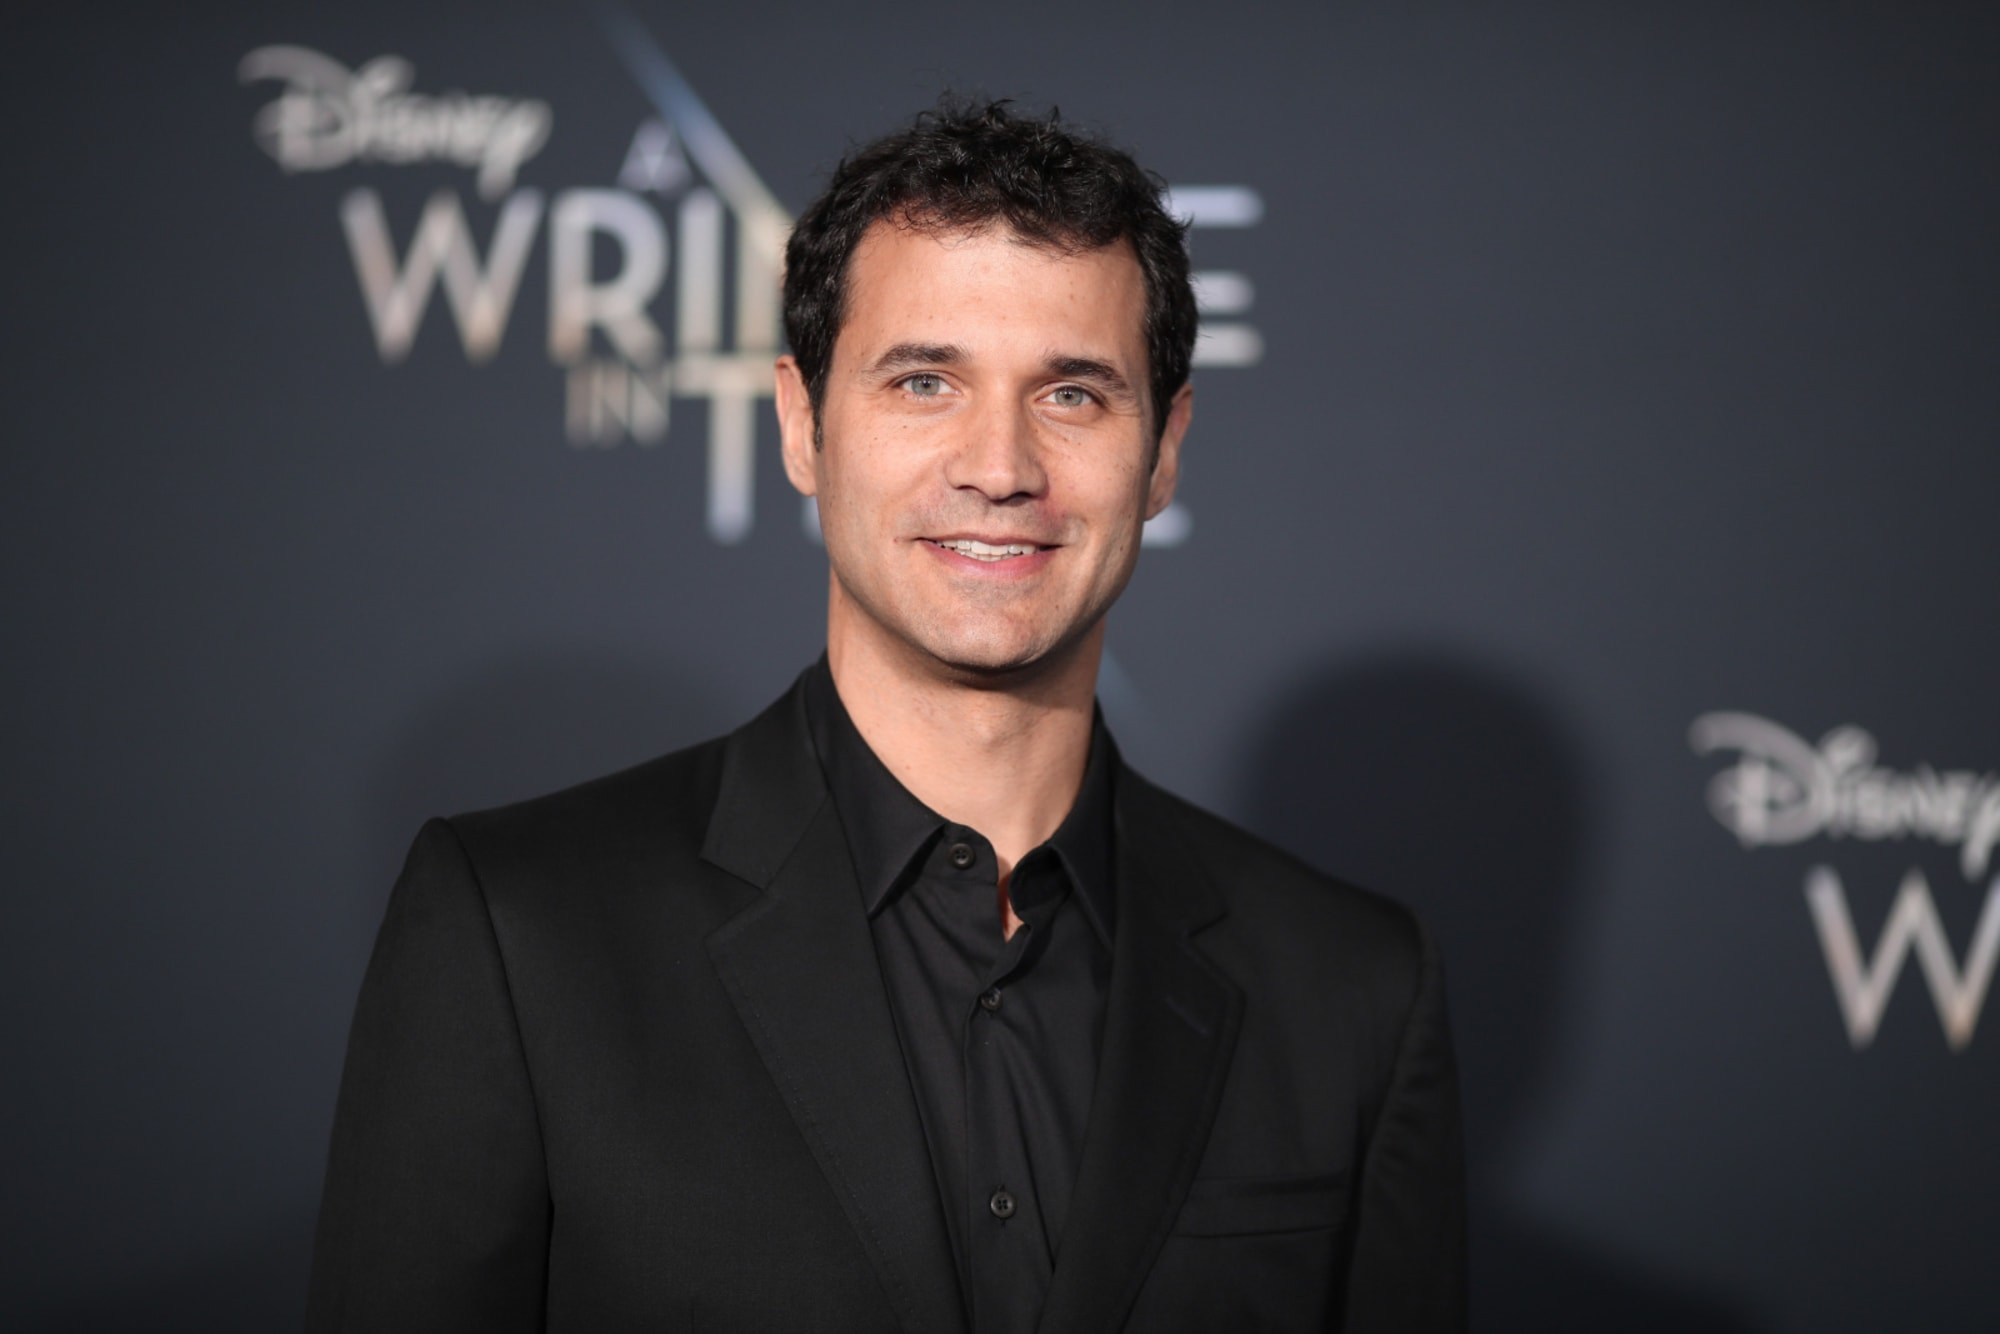 The 46-year old son of father (?) and mother(?) Ramin Djawadi in 2021 photo. Ramin Djawadi earned a  million dollar salary - leaving the net worth at  million in 2021